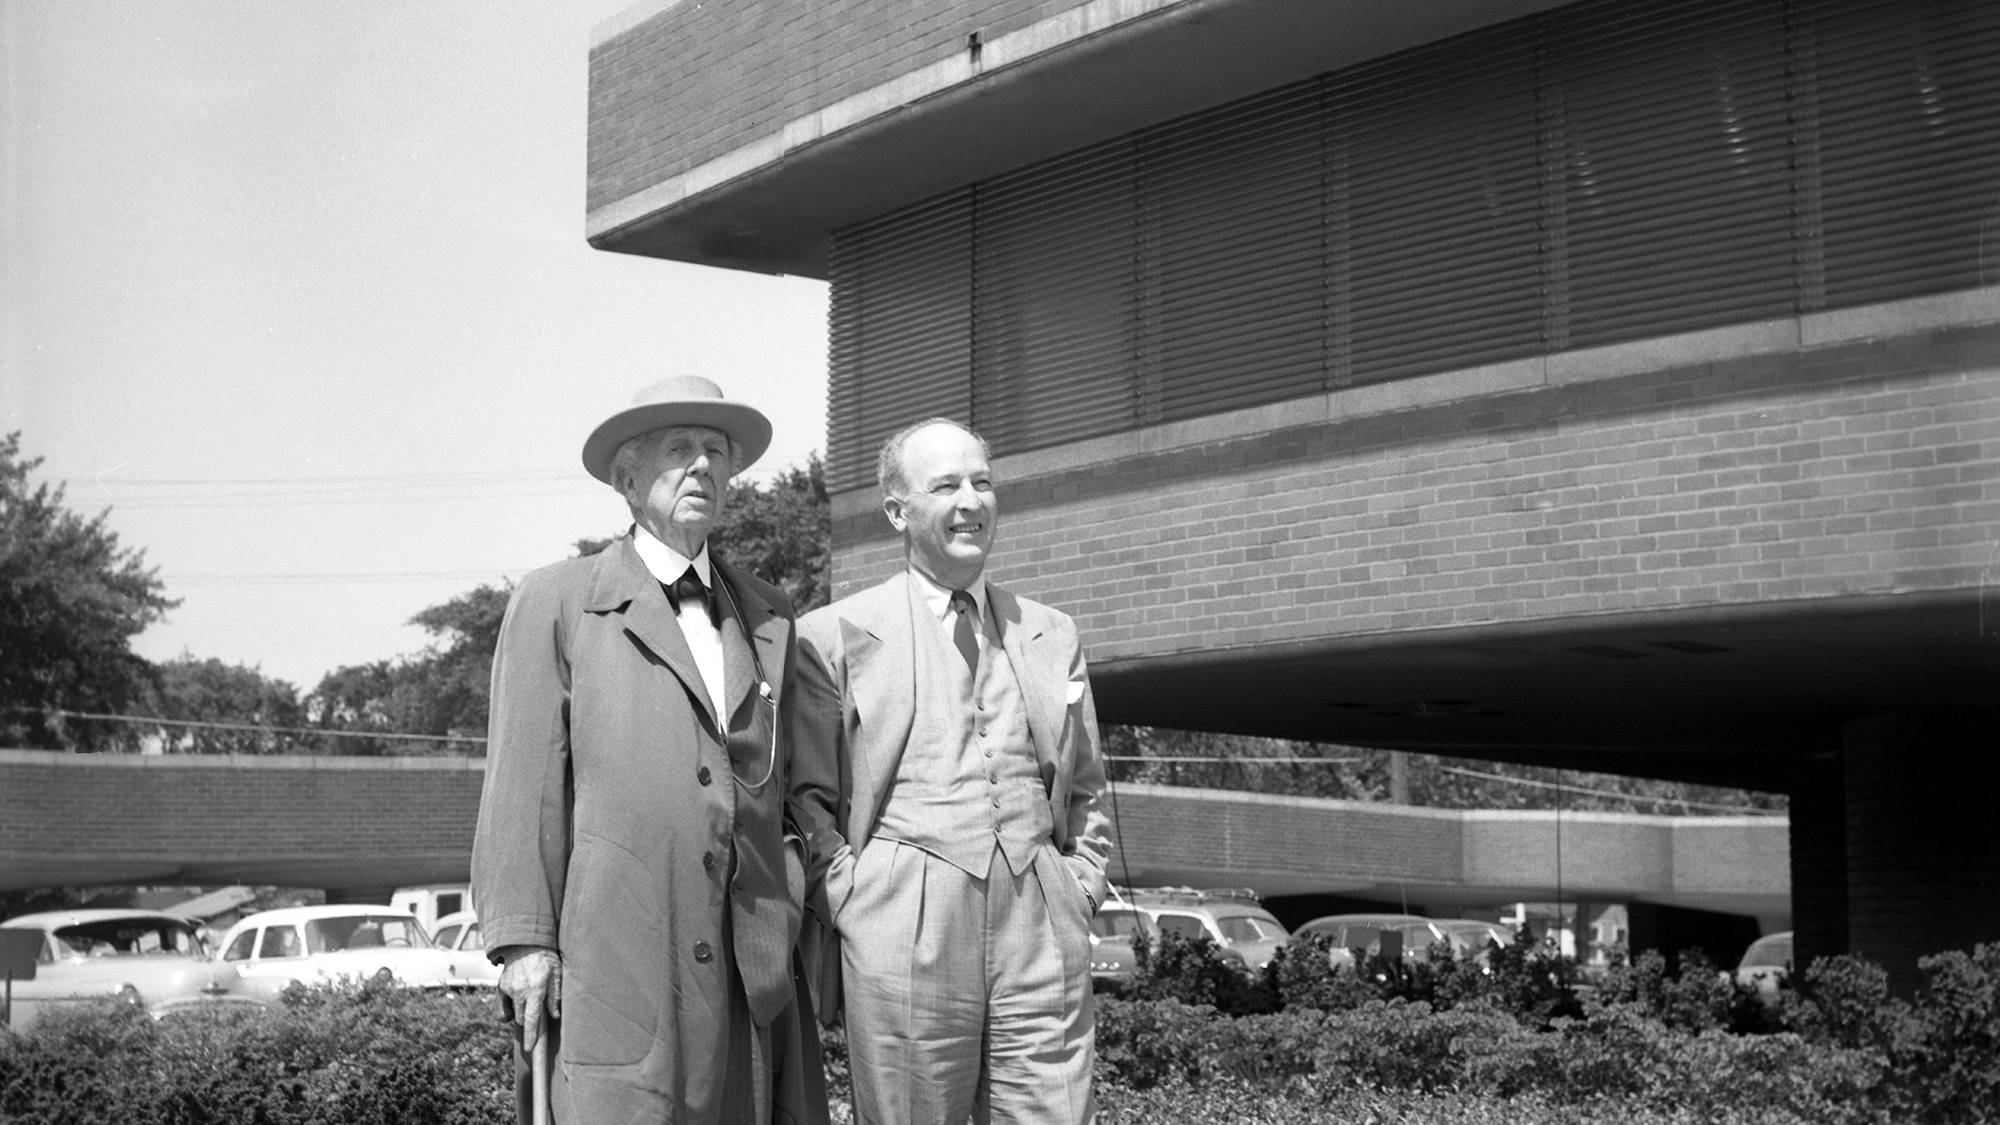 HF Johnson, Jr et Frank Lloyd Wright